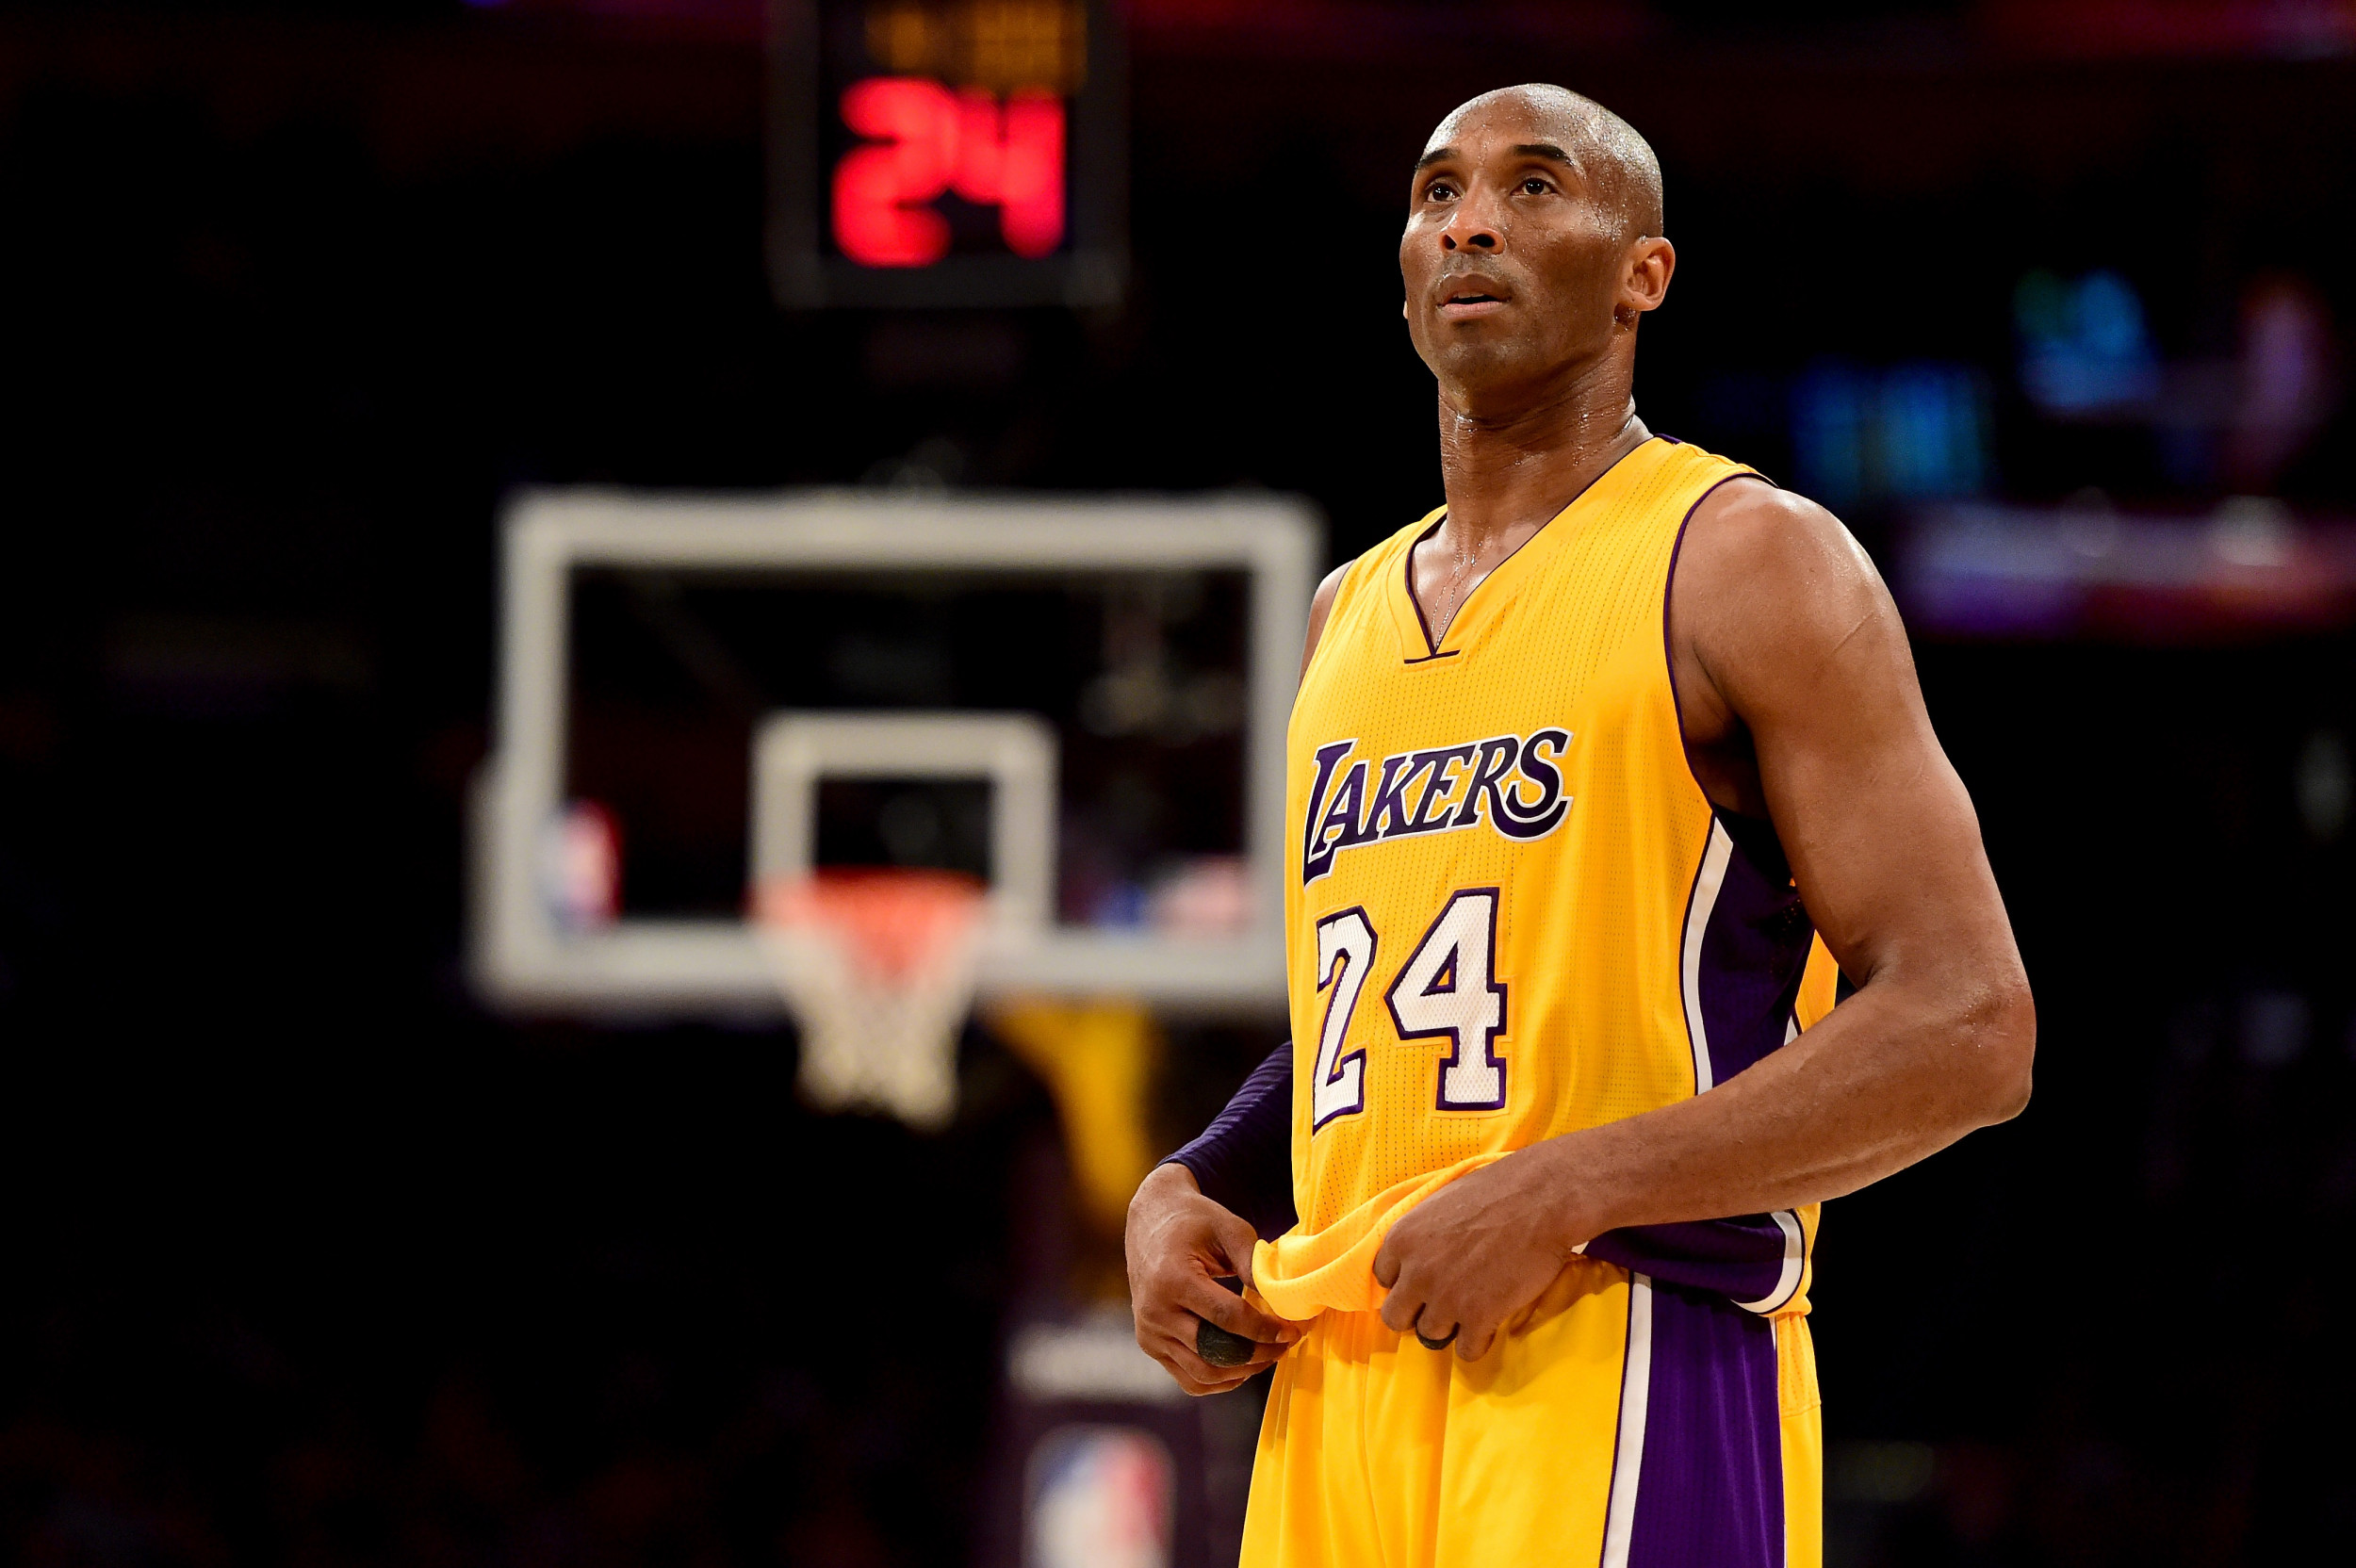 Kobe Bryant S Death Sparks Petition To Get Lakers Star On Nba Logo